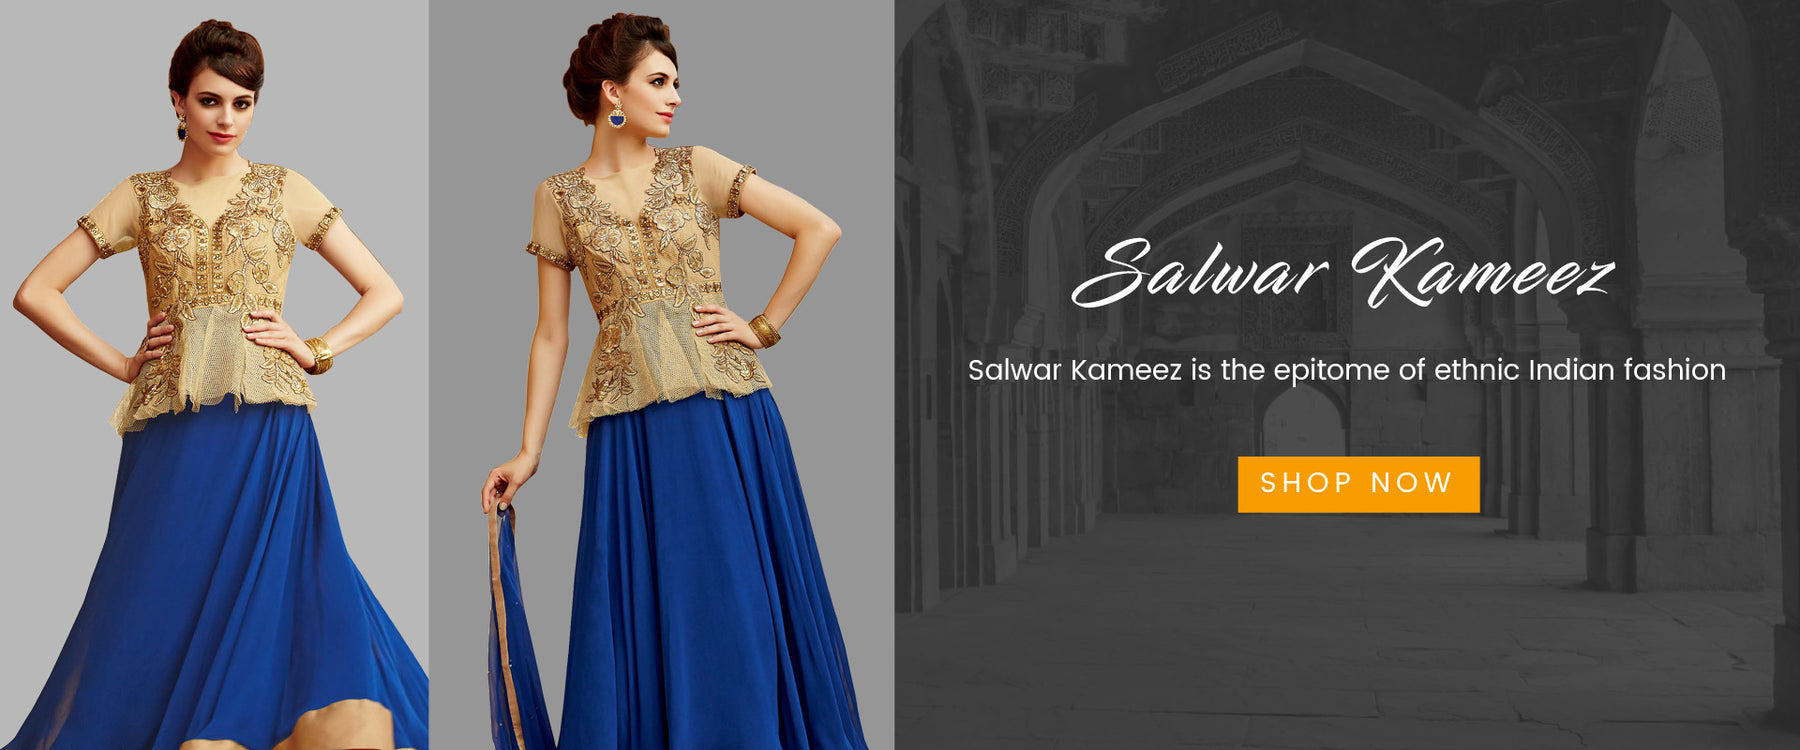 Indian Salwar Kameez Online: Buy latest Designer Salwar Suits online at best price on Variation. Shop from range of Anarkali, Churidar, Punjabi and Bridal Salwar Kameez in cotton, silk, chiffon and net salwar kameez for wedding party and reception.